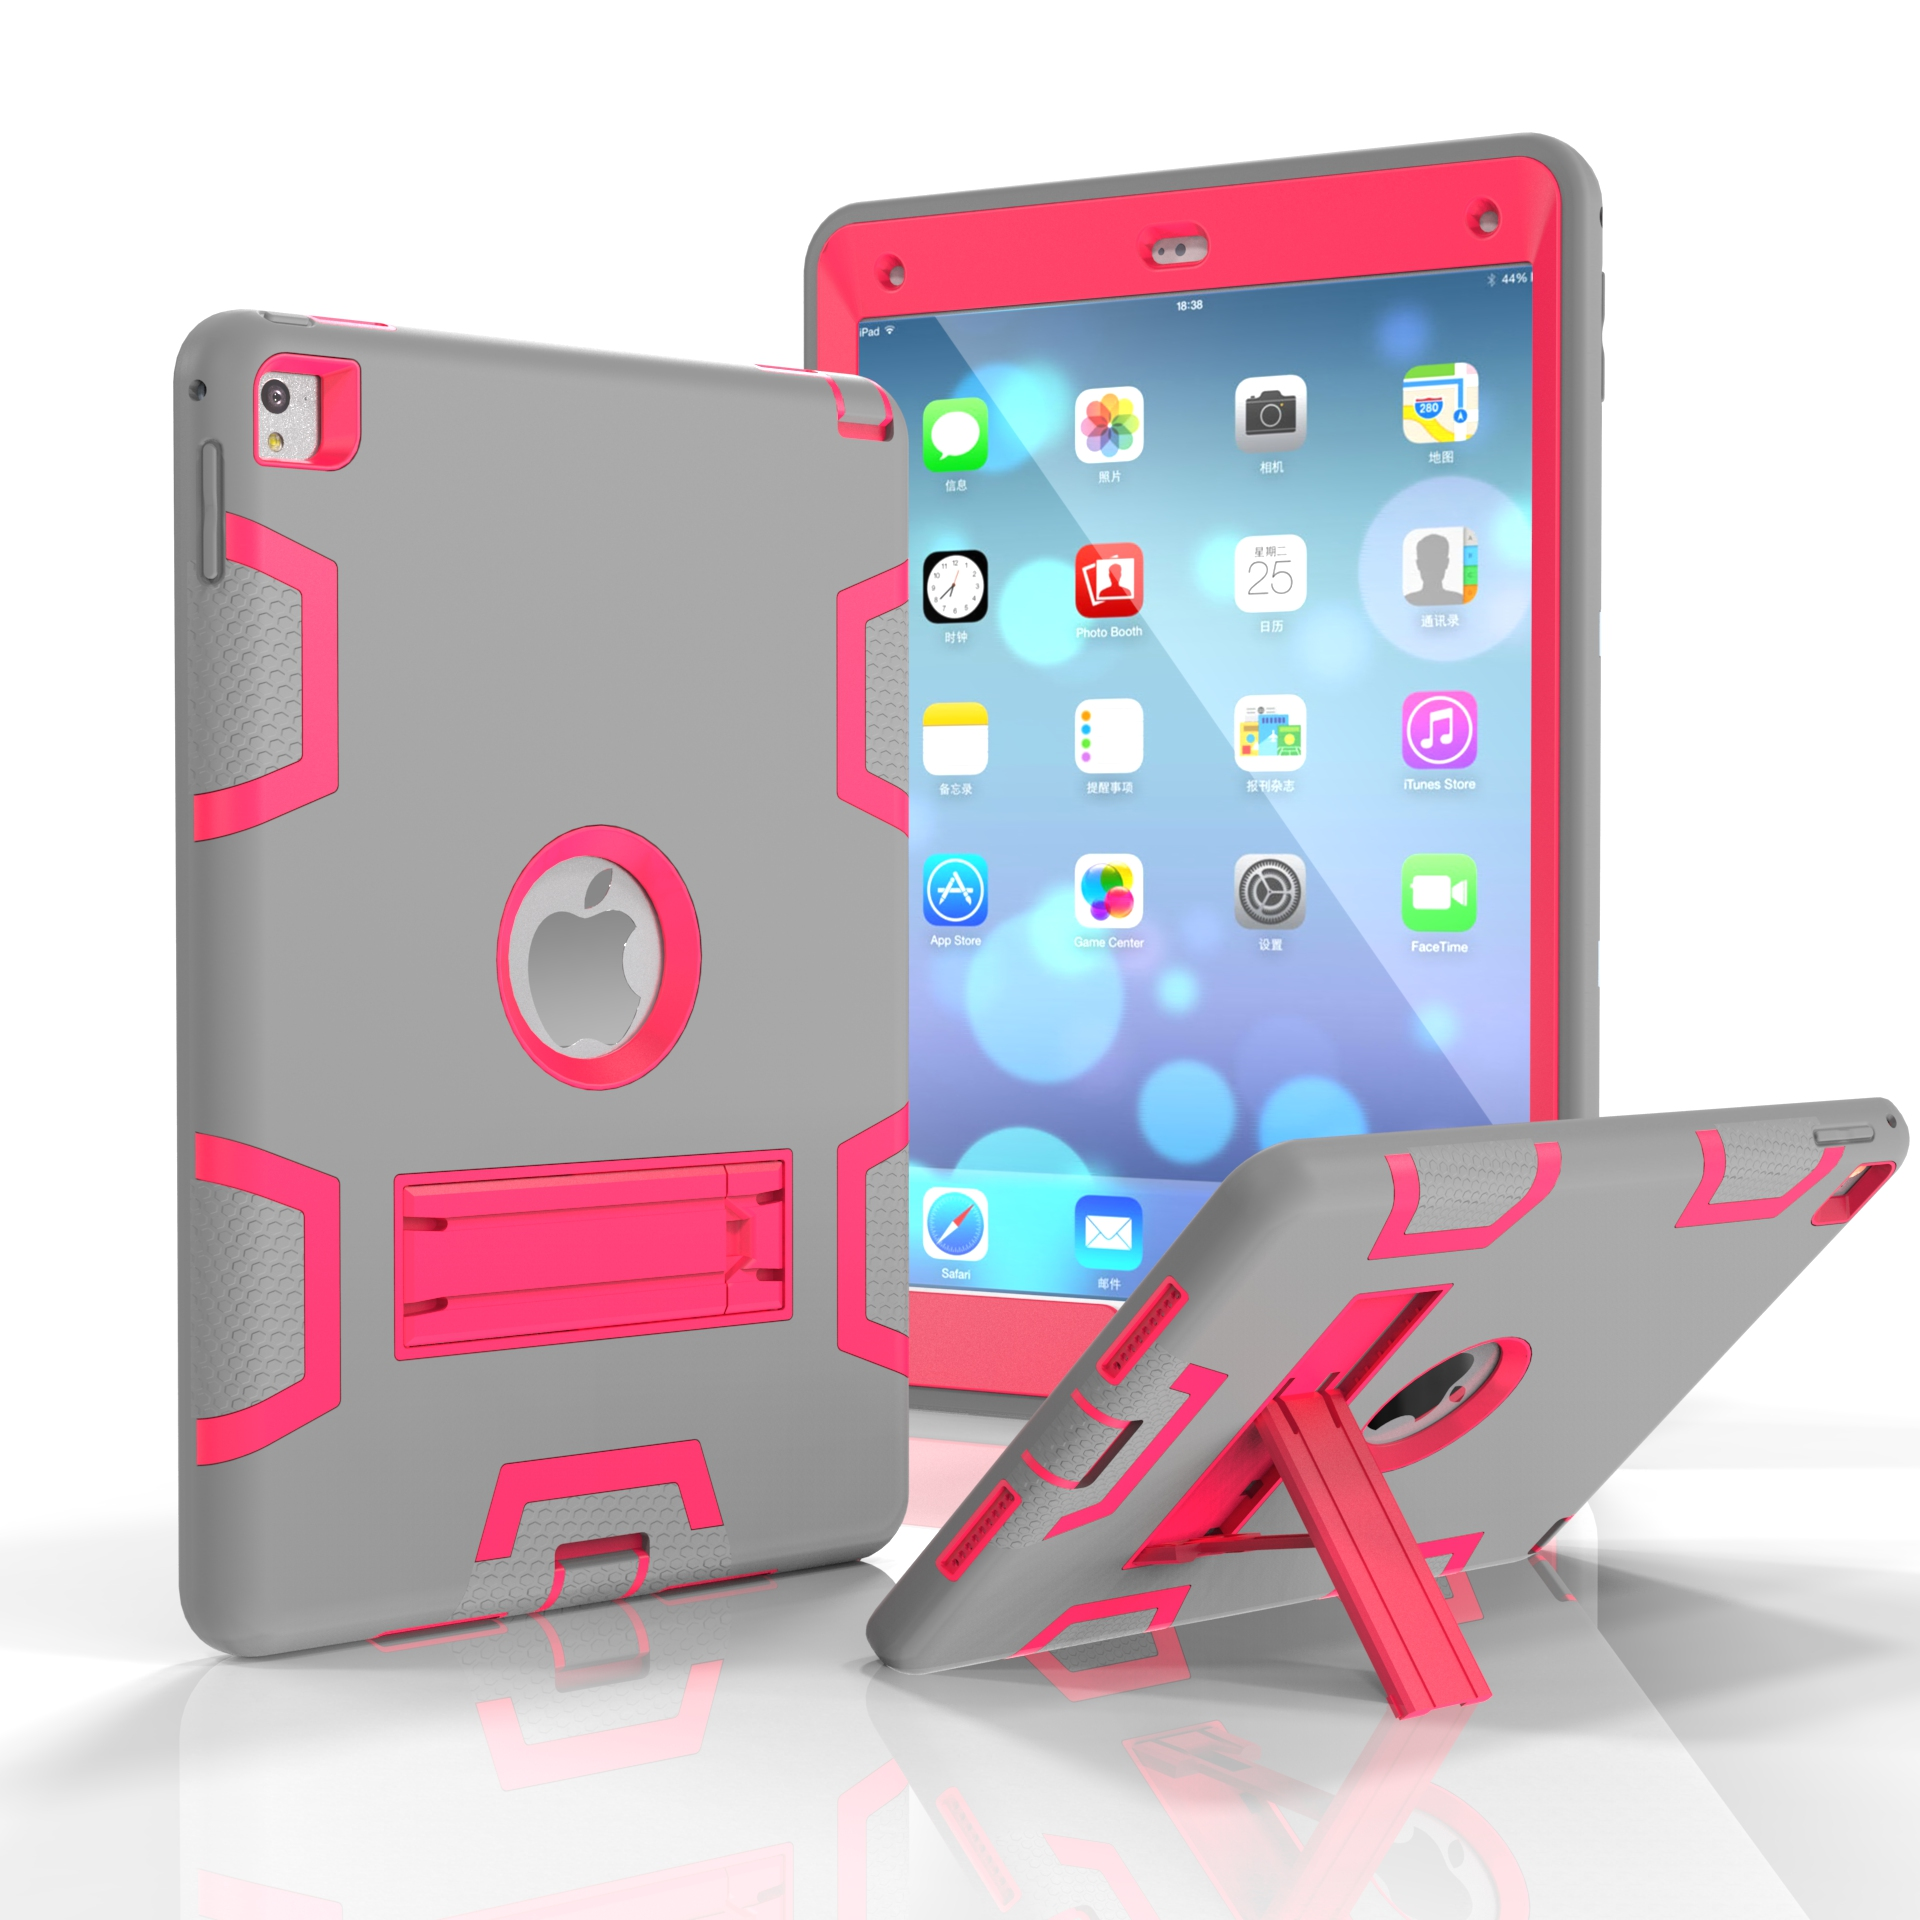 For iPad air2/iPad 6/iPad pro 9.7 2016 PC+ Silicone Hit Color Armor Case Tri-proof Shockproof Dustproof Anti-fall Protective Cover  Gray + rose red